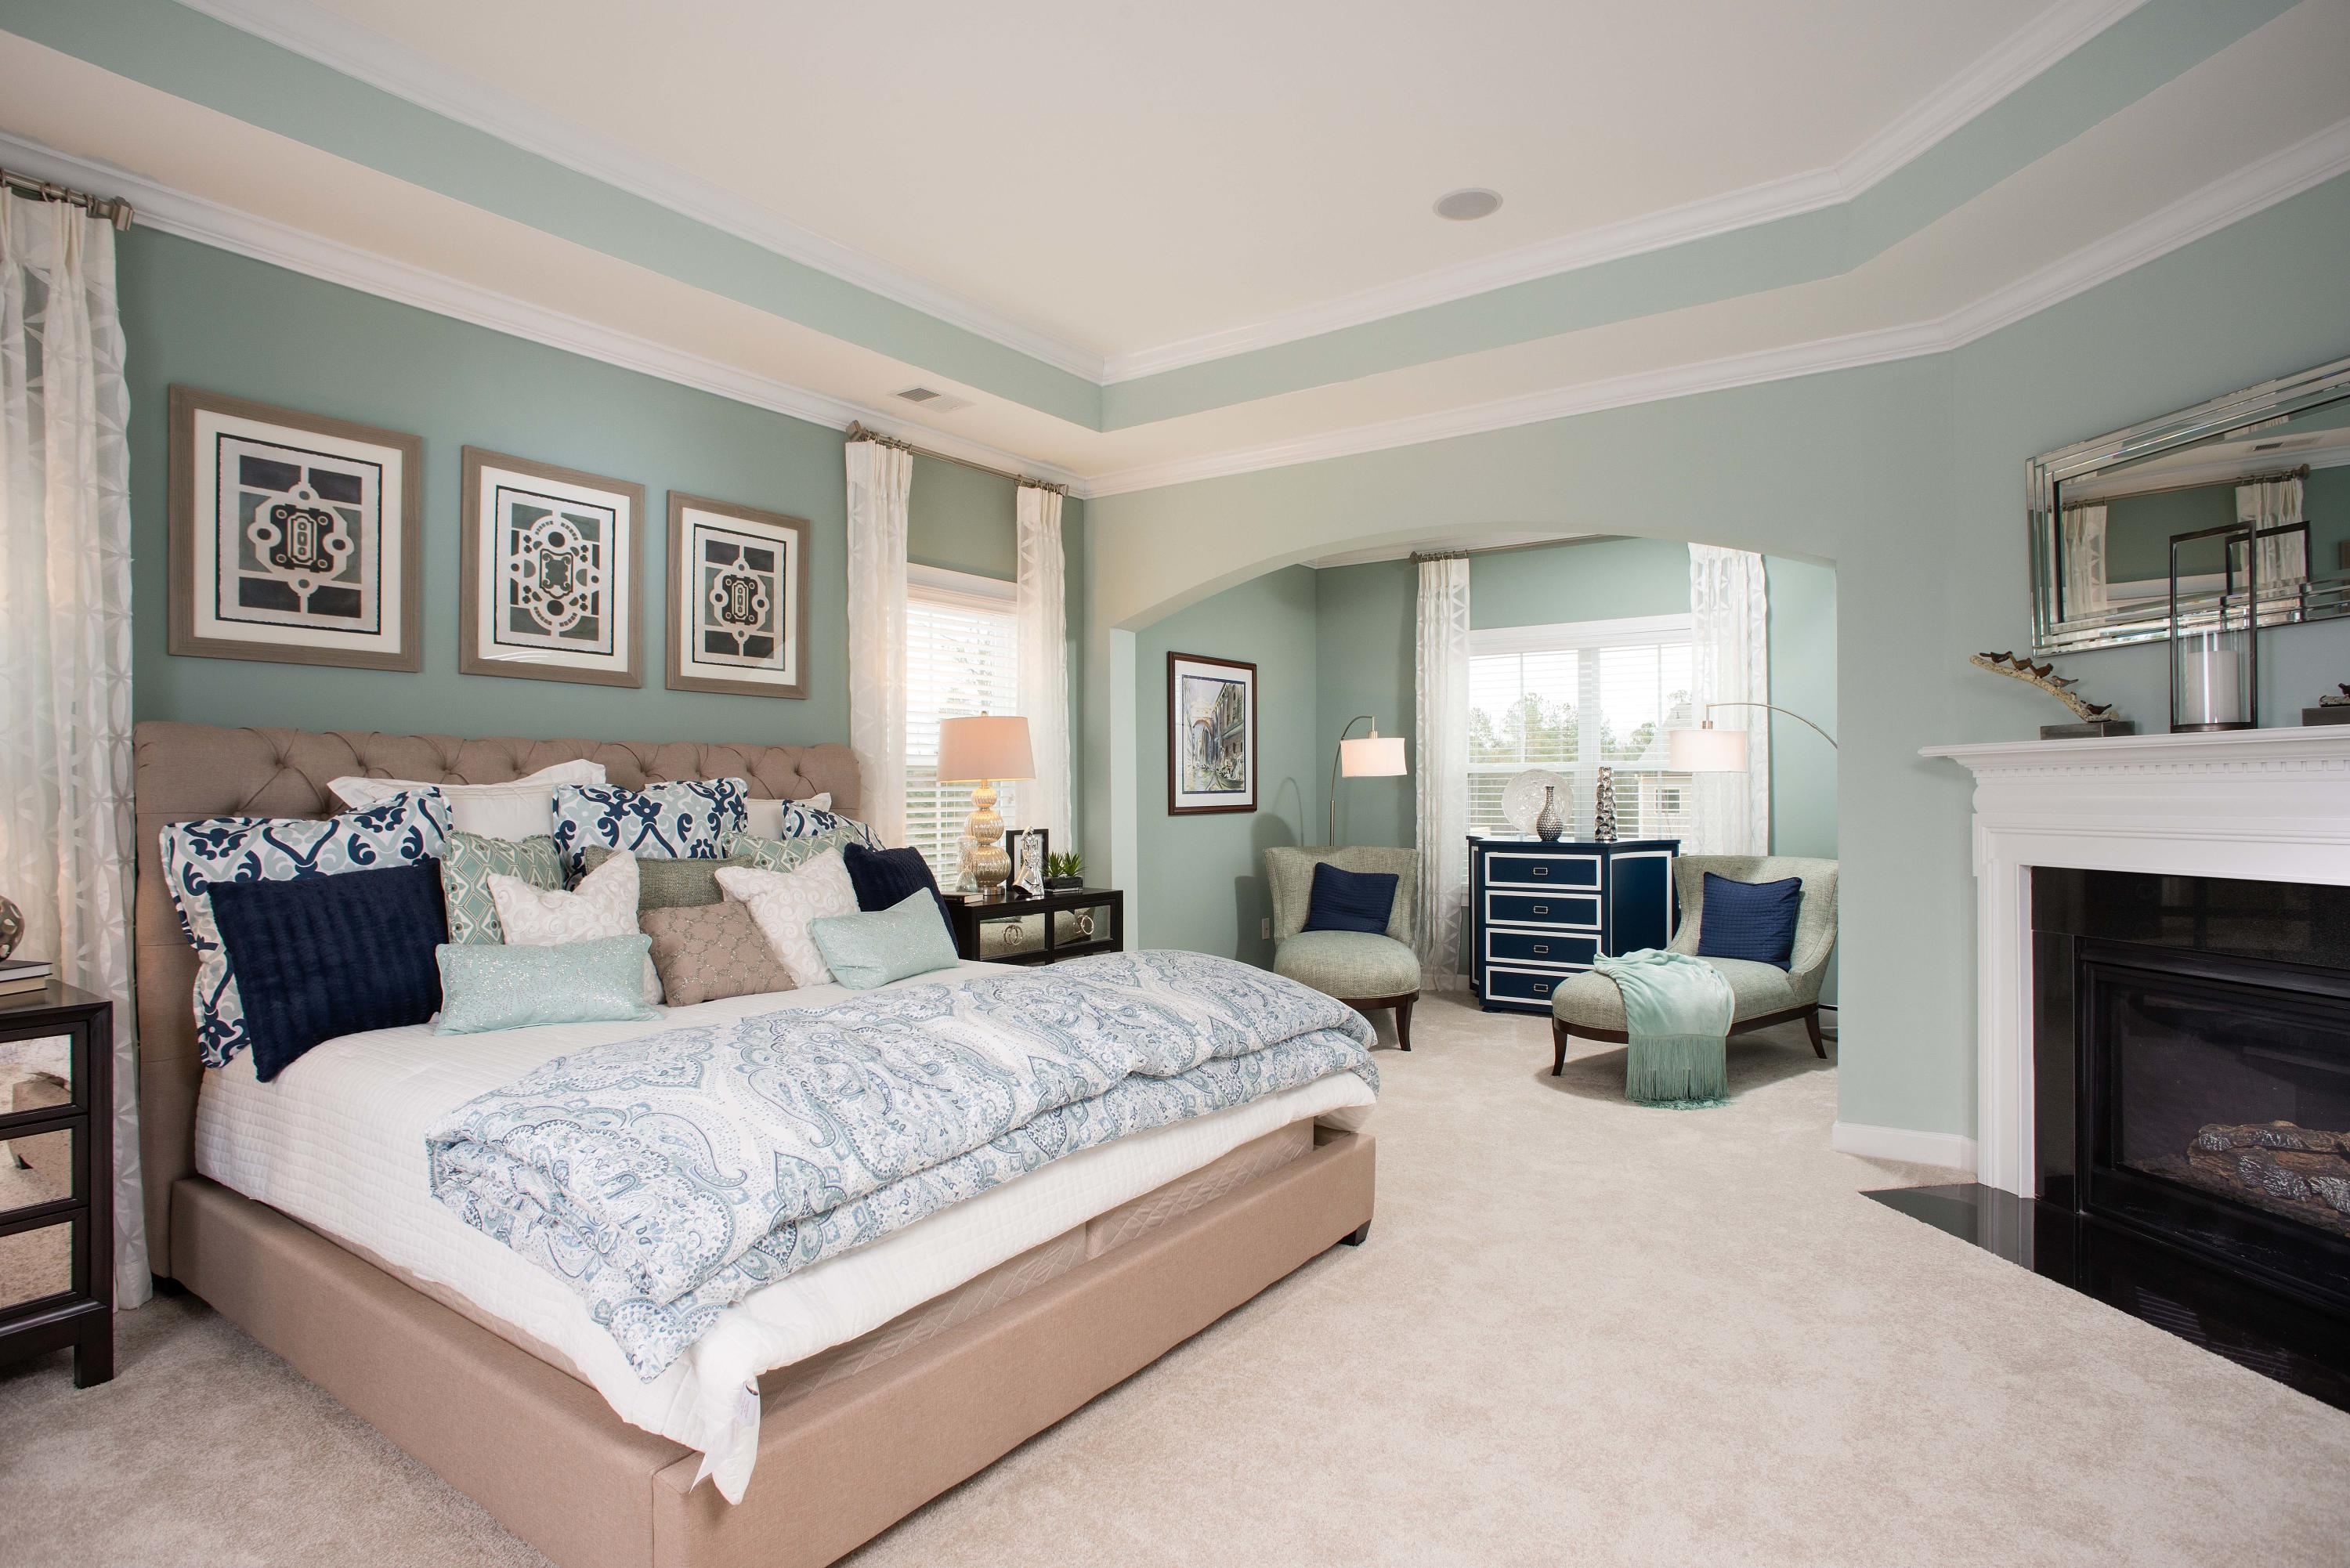 The Village at Stiles Point Homes For Sale - 837 Foliage, Charleston, SC - 1